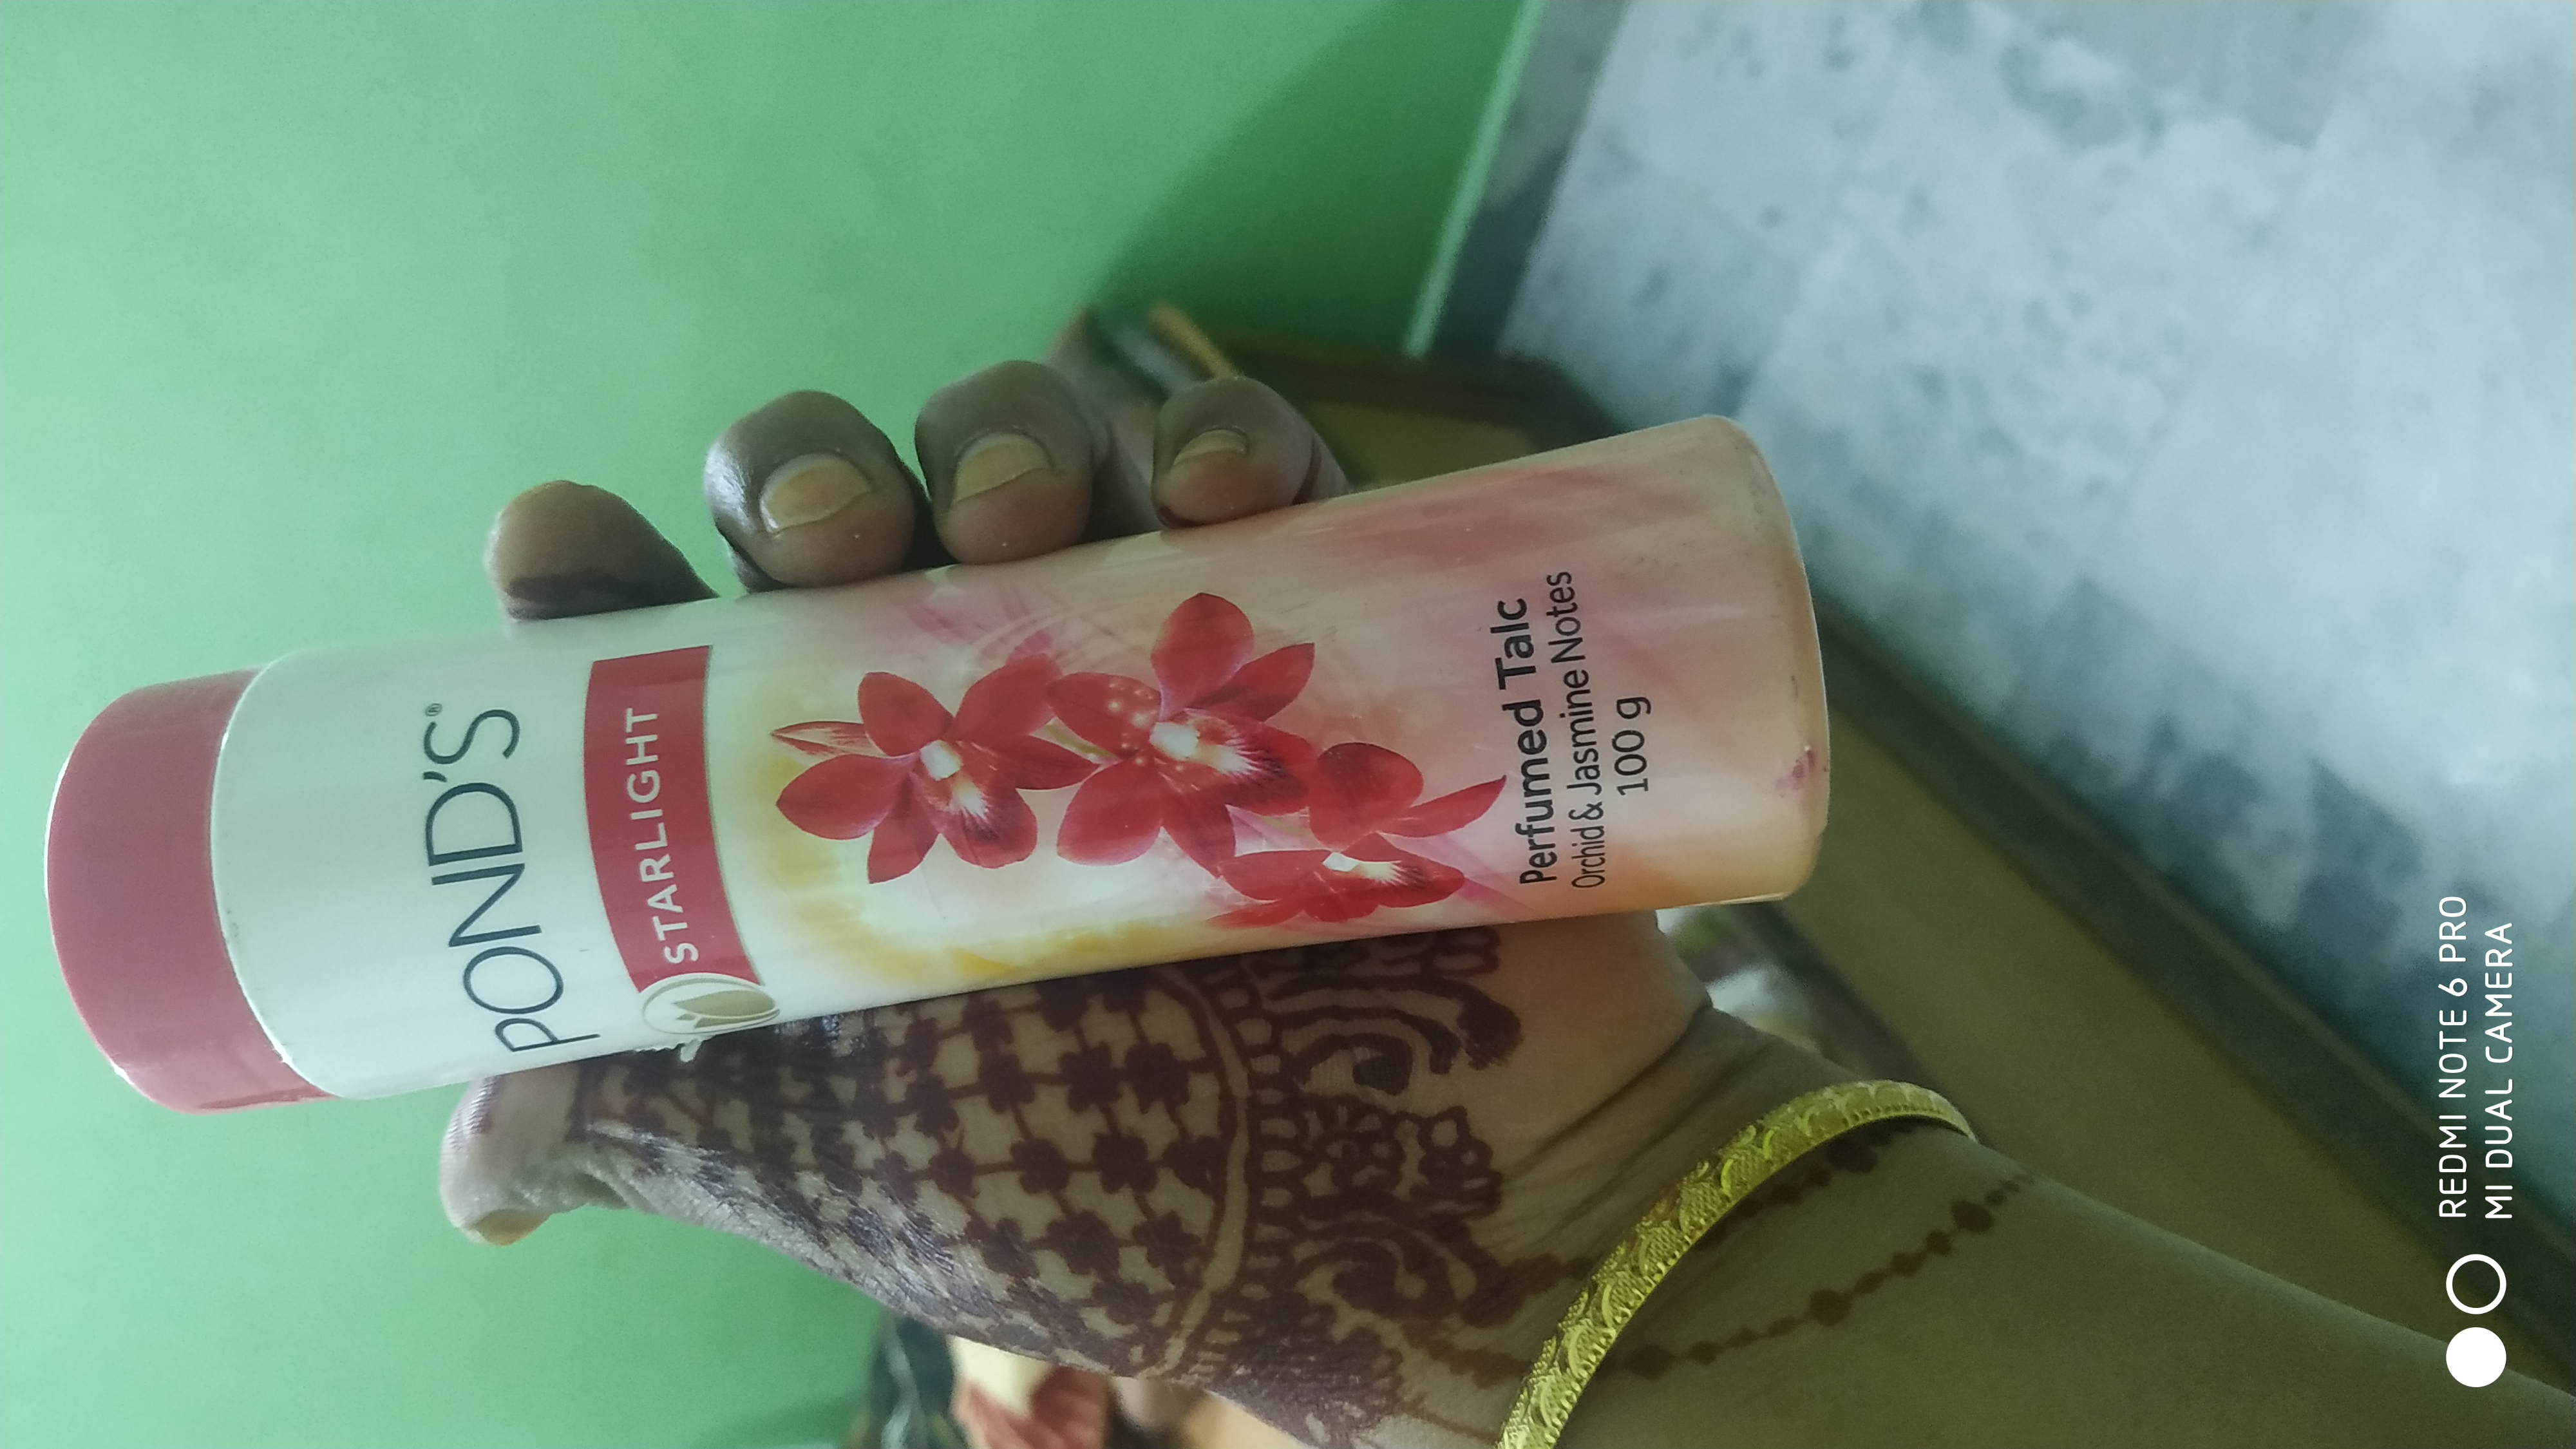 Pond's Starlight Talc-Cool and nice smell powder-By umadevi